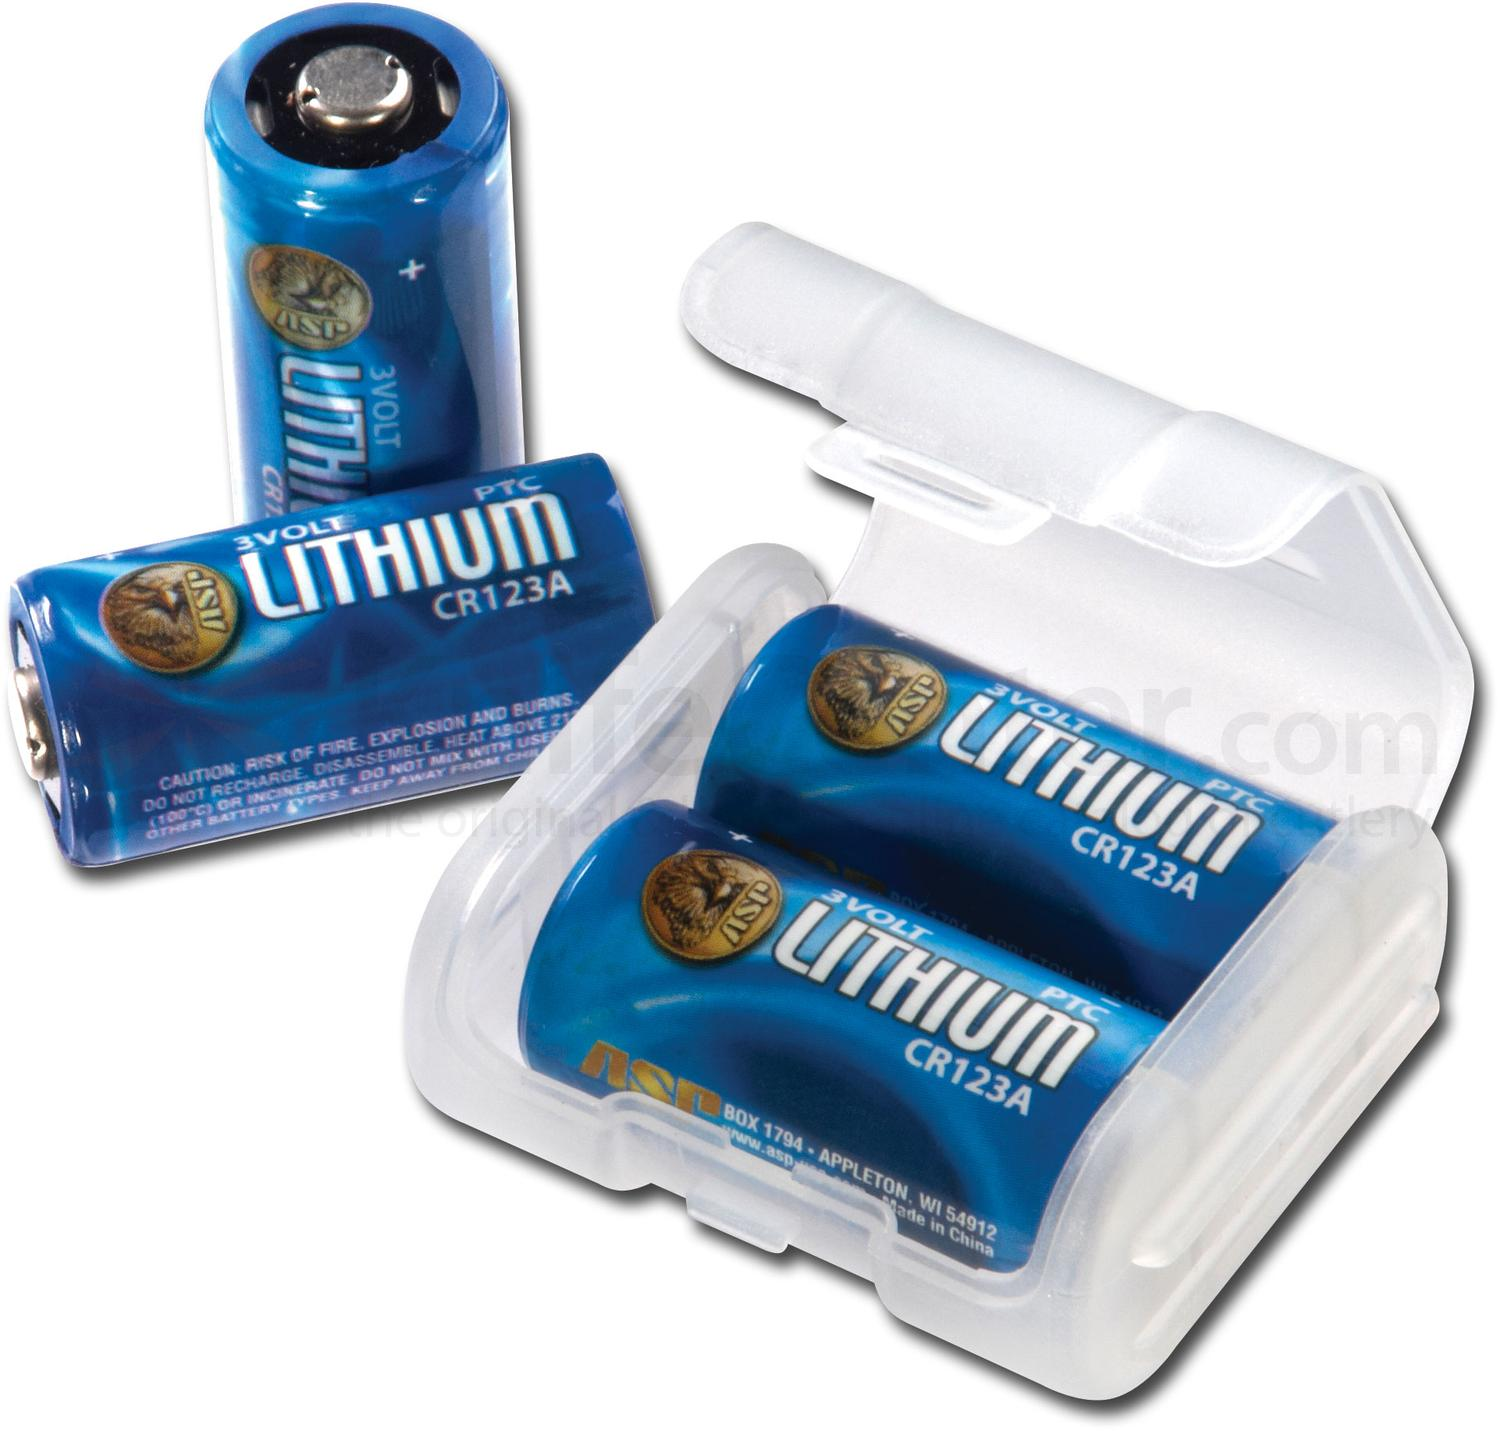 ASP CR123A Lithium Batteries, 4 Pack with Link Case